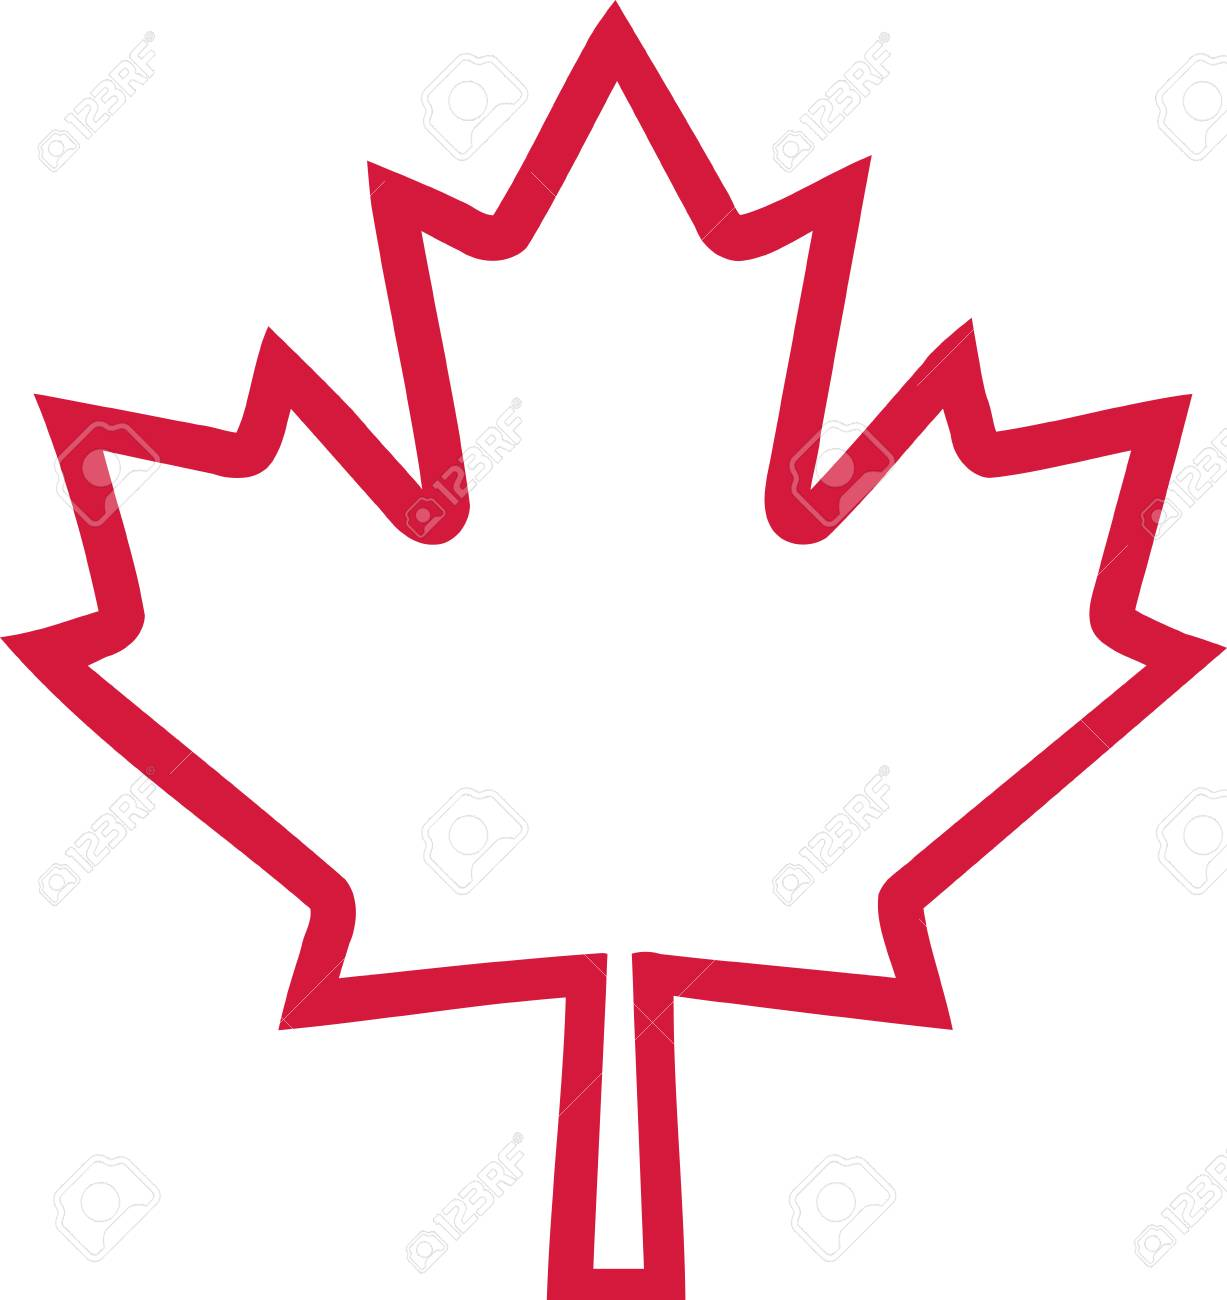 Canada Maple Leaf Outline Royalty Free Cliparts Vectors